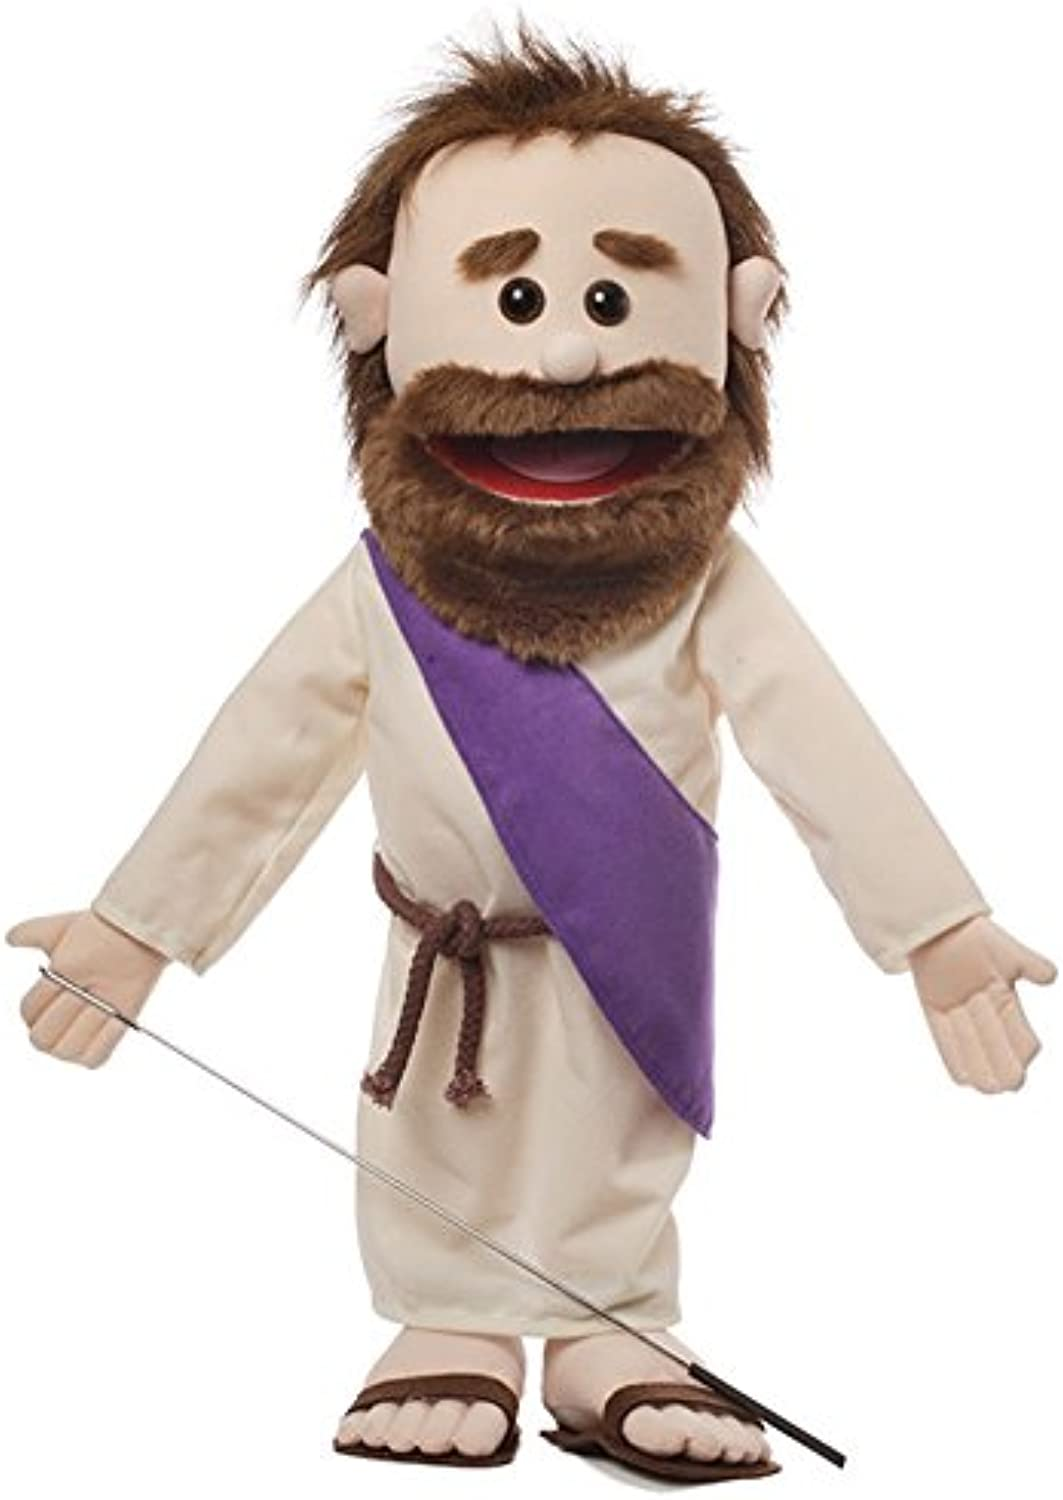 25  Jesus w  Rope Belt, Full Body Bible Character, Christian Ministry Puppet